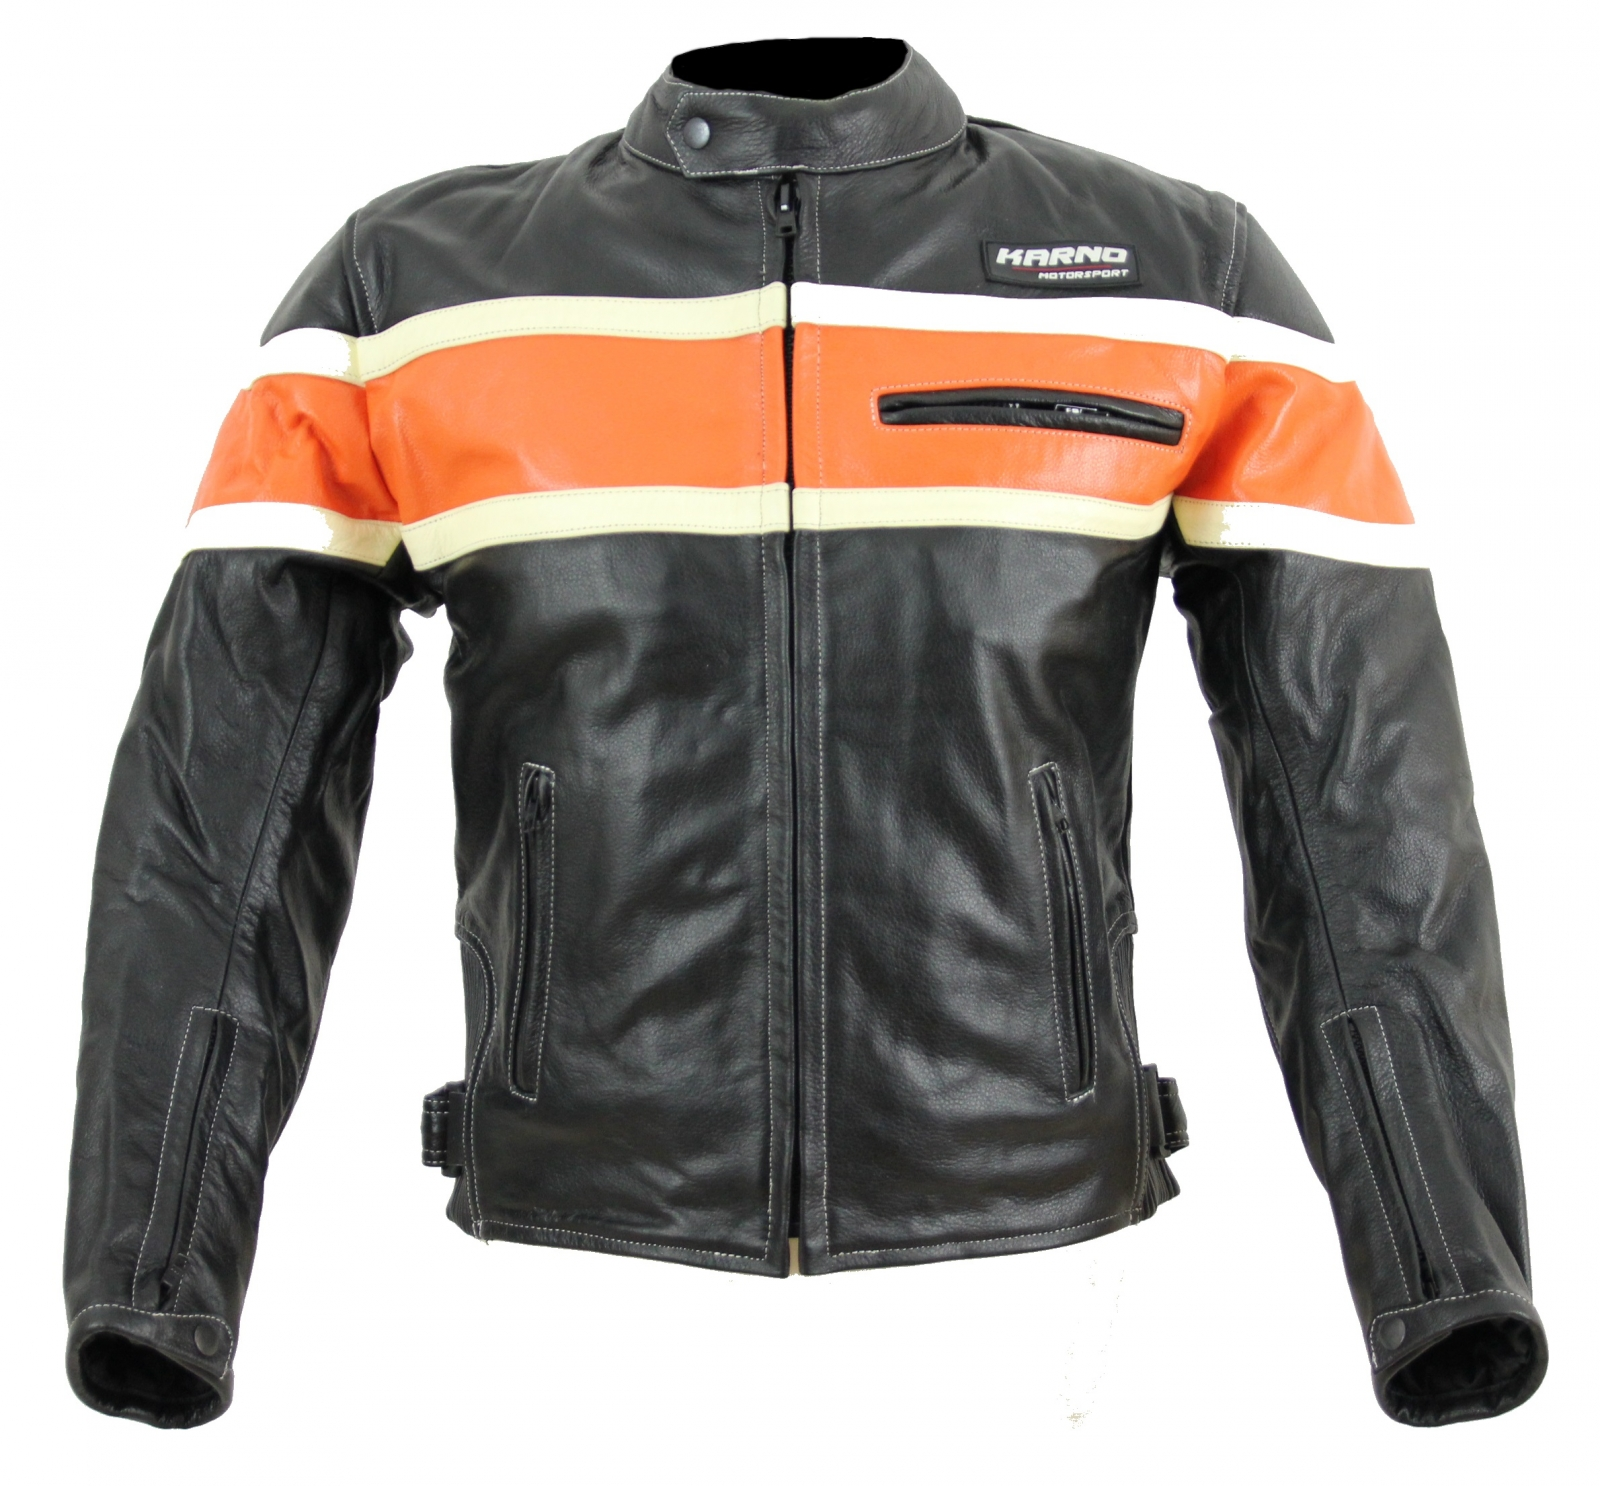 kc011 blouson moto chopper karno motorsport cuir noir orange biker usa style vetement moto. Black Bedroom Furniture Sets. Home Design Ideas